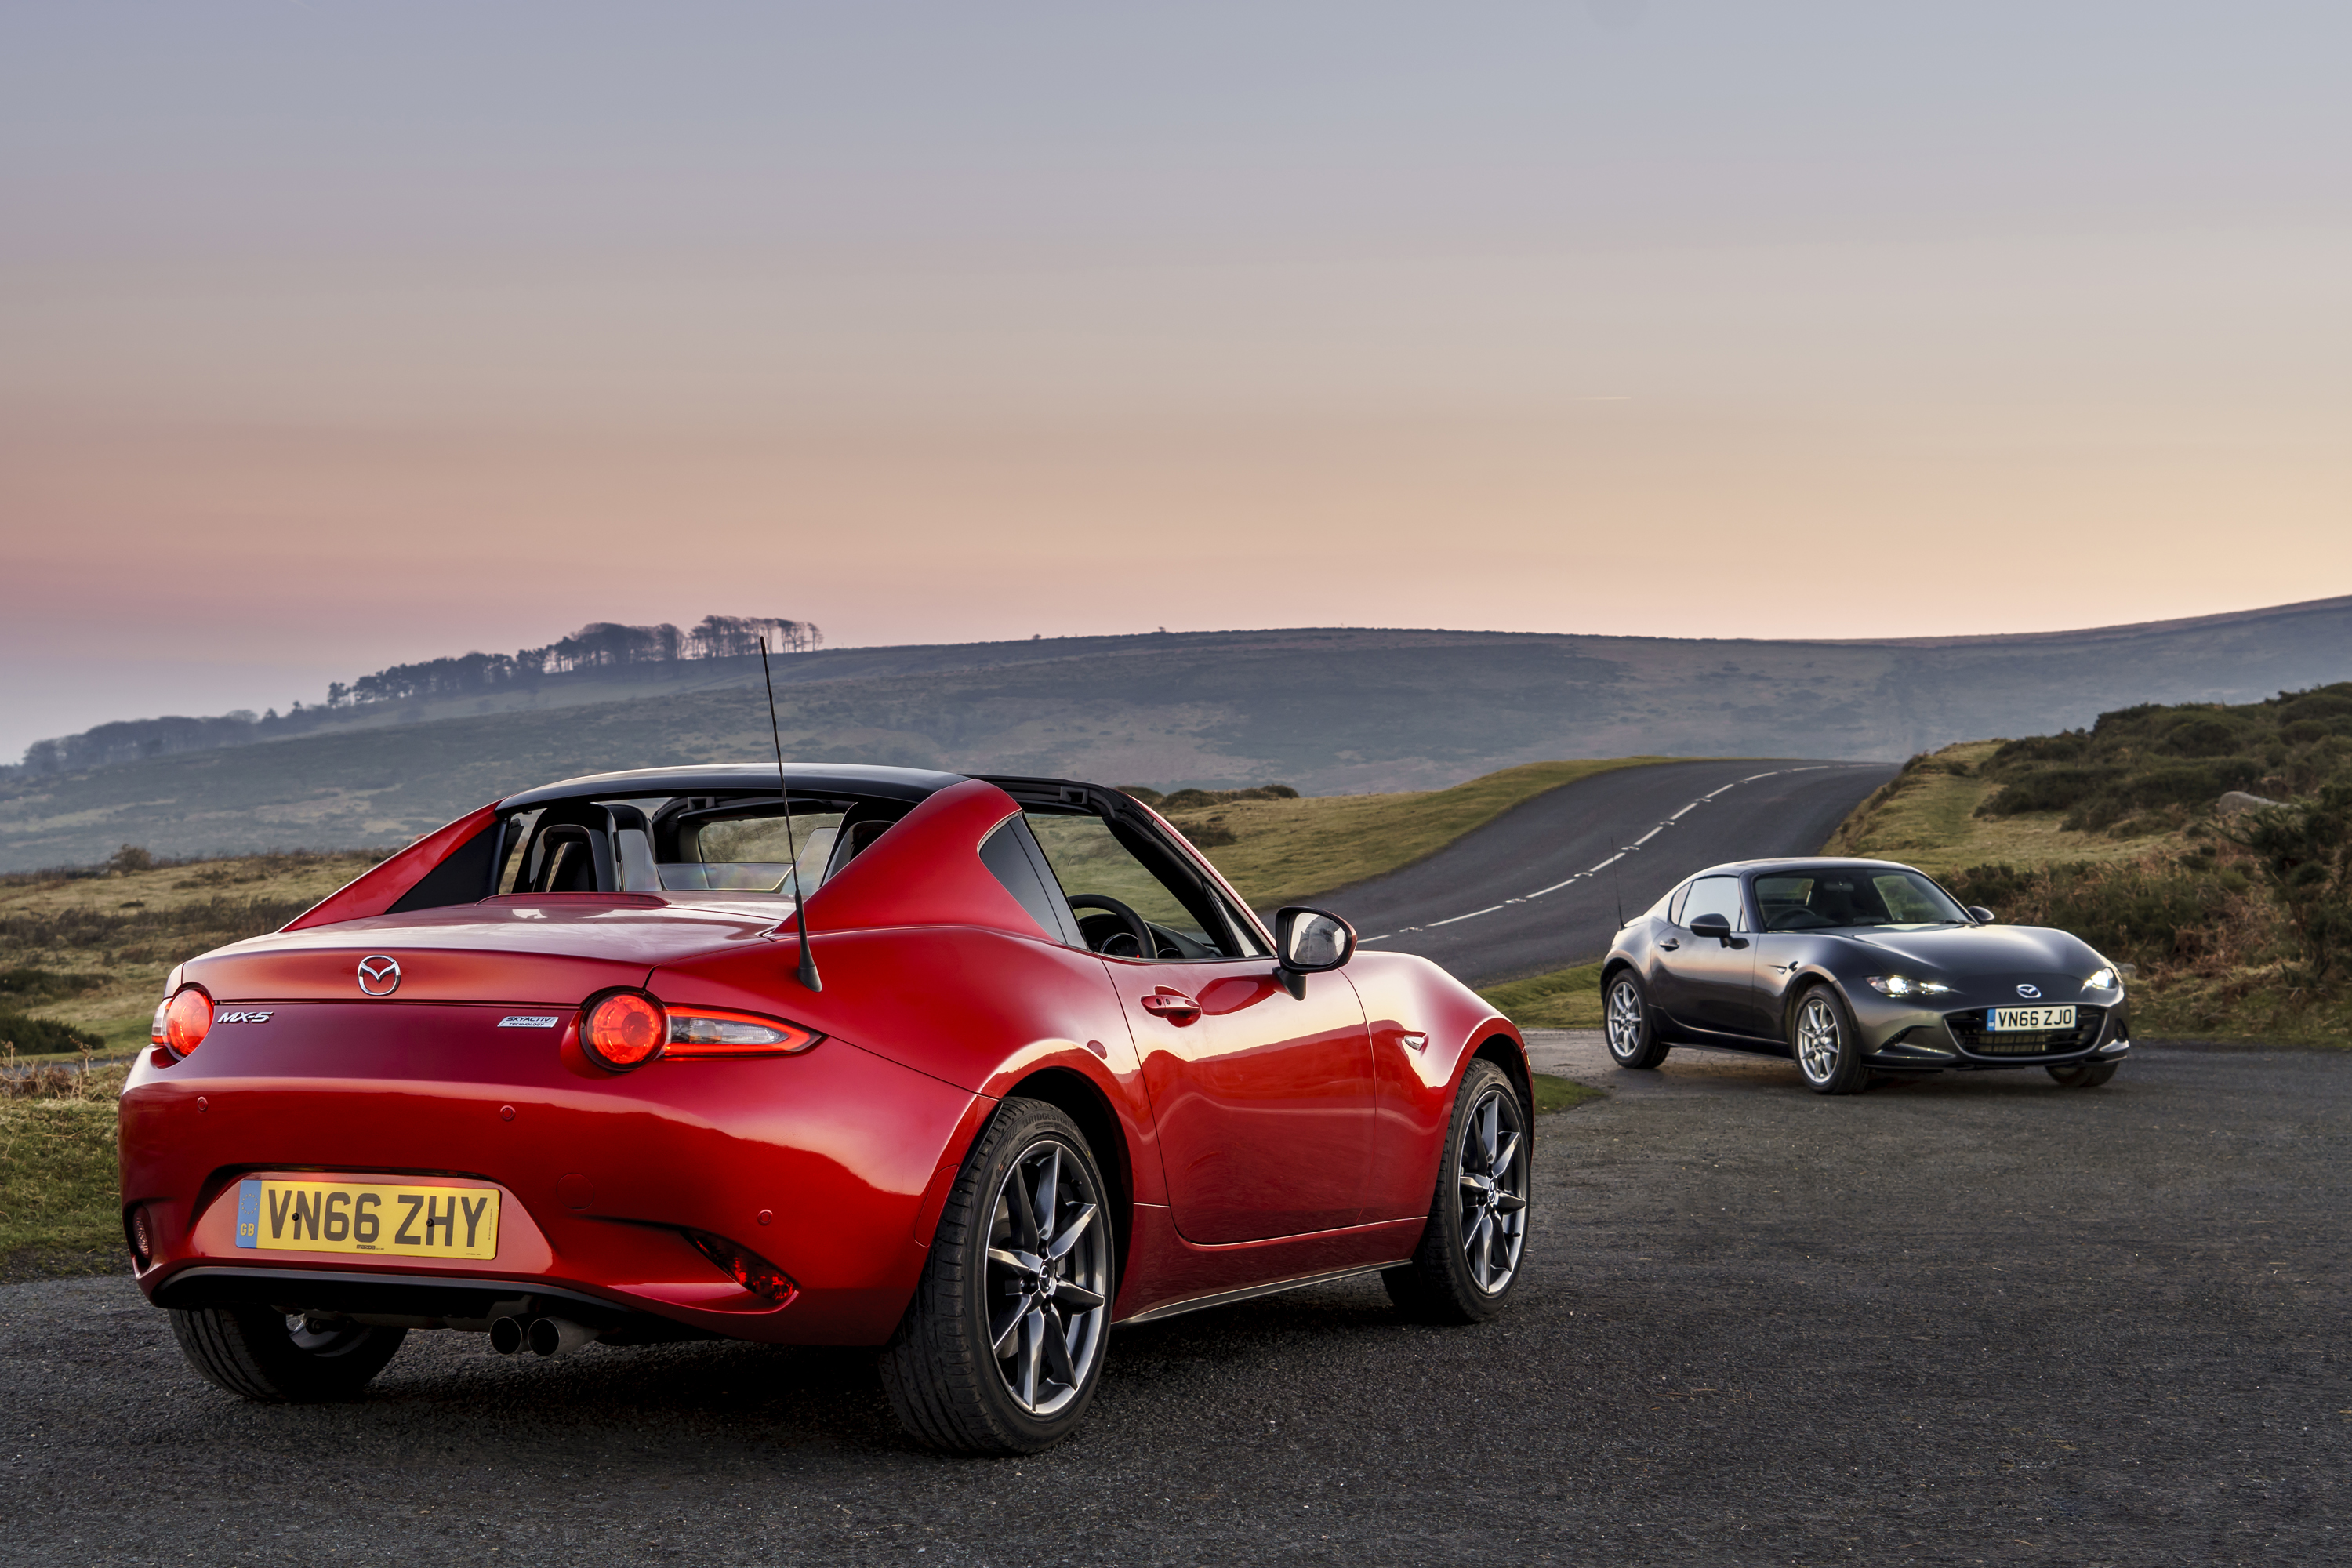 mazda mx 5 rf named best cabriolet in the 2018 uk car of the year awards inside mazda. Black Bedroom Furniture Sets. Home Design Ideas